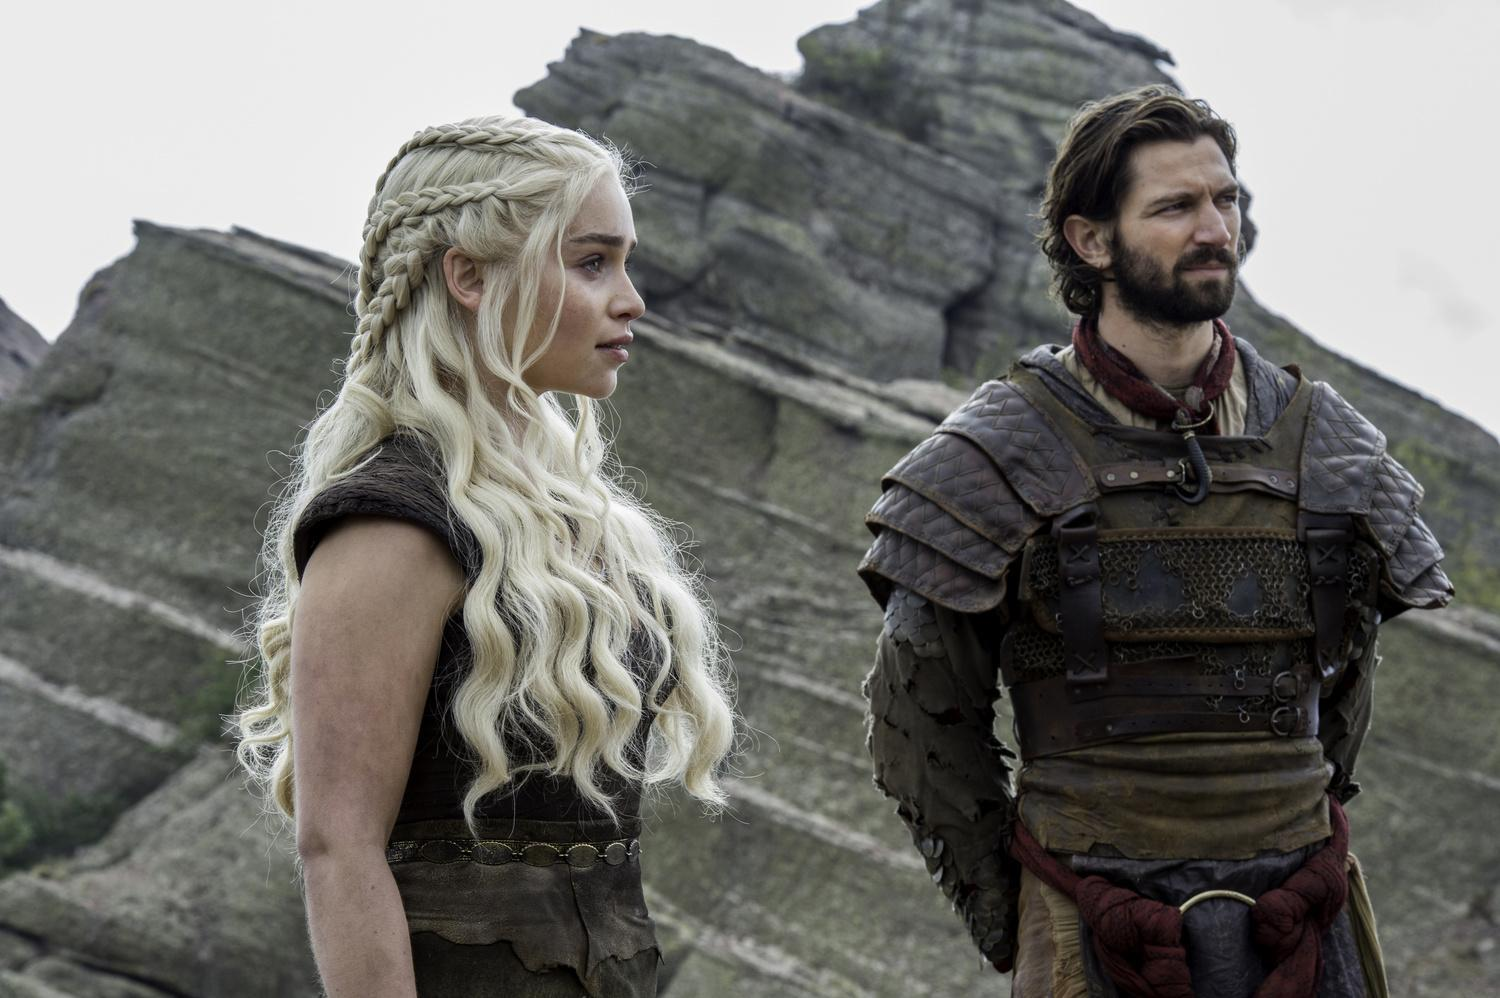 Emilia Clarke as Daenerys Targaryen and Michiel Huisman as Daario Naharis. Credit: Macall B. Polay/HBO